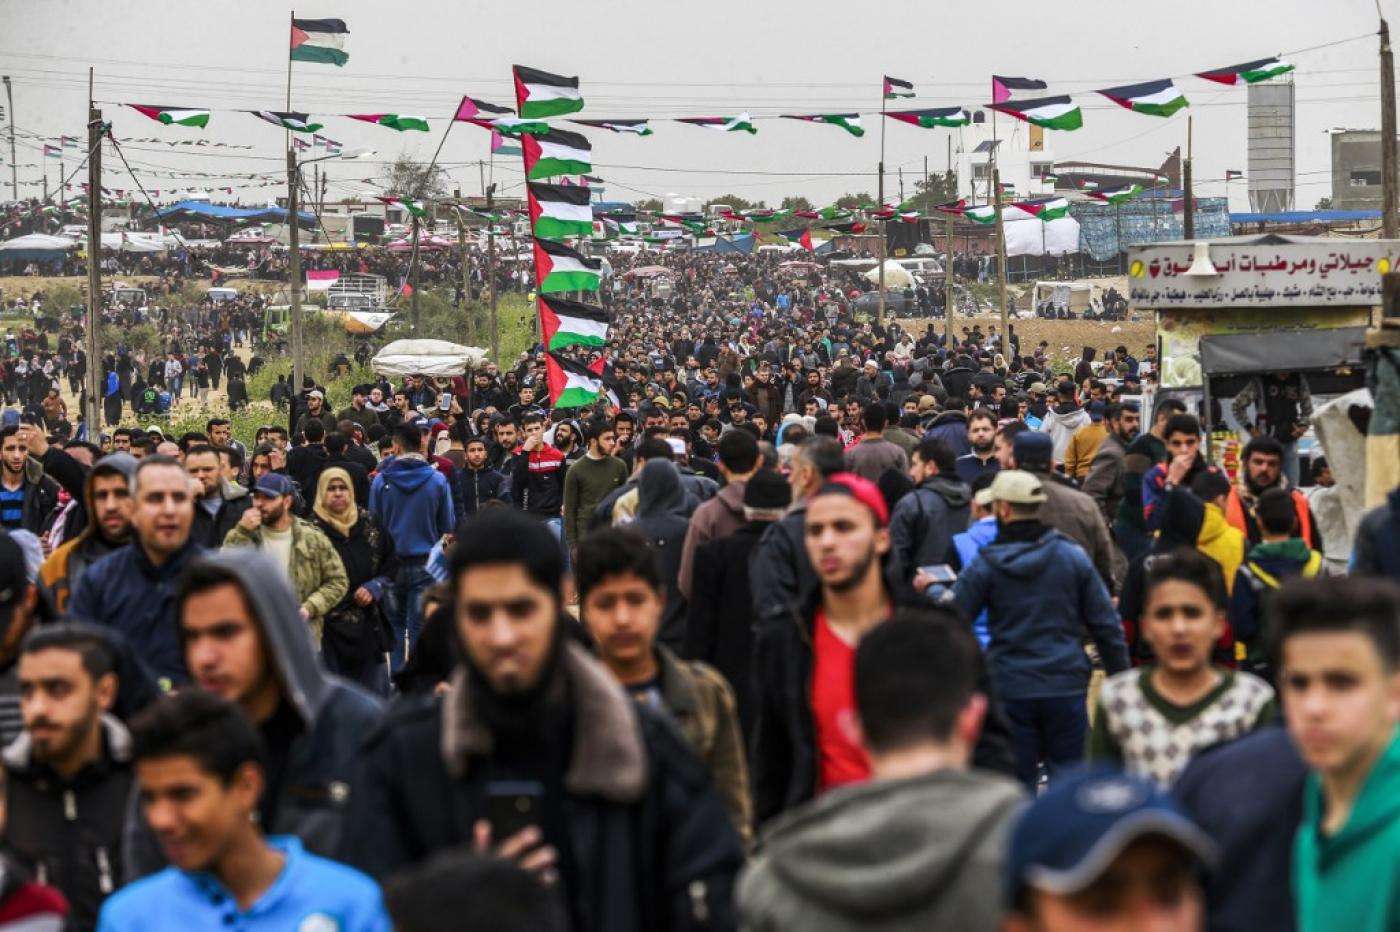 """A Palestinian man shot by Israeli forces during a demonstration near the Gaza-Israel boundary fence has succumbed to his wounds, the health ministry in the besieged coastal enclave said in a statement. Ahmed Mohammed Abdullah al-Qara, 23, was shot in the abdomen during a """"Great March of Return"""" protest east of Khan Yunis on Friday, the health ministry said. Palestinian child shot in head by Israeli forces in West Bank Read More » At least 56 other protesters were treated for injuries at the demonstration, according to the ministry.  38 of those hurt were shot with live rounds or rubber-coated steel bullets, including 22 minors and three women, the ministry added.  A military ambulance was also hit by rubber-coated steel bullets during the march, according to the health ministry.   Palestinians in the Gaza Strip have held regular protests - dubbed the Great March of Return - since March 2018. They are demanding an end to the ongoing siege of the coastal Palestinian territory and to be allowed to return to their ancestral towns and villages in what is now Israel. Israel has been criticised for its heavy-handed response to the protests, with frontline doctors accusing the Israeli army of intentionally maiming Palestinians. In 2018, Israeli forces killed 290 Palestinians, including 55 minors, in the occupied West Bank and Gaza Strip, according to Israeli human-rights group B'Tselem. B'Tselem said that Israel's """"reckless open-fire policy"""" was responsible for a majority of the deaths. The group also accused Israeli forces of implementing a """"shoot to kill"""" policy."""